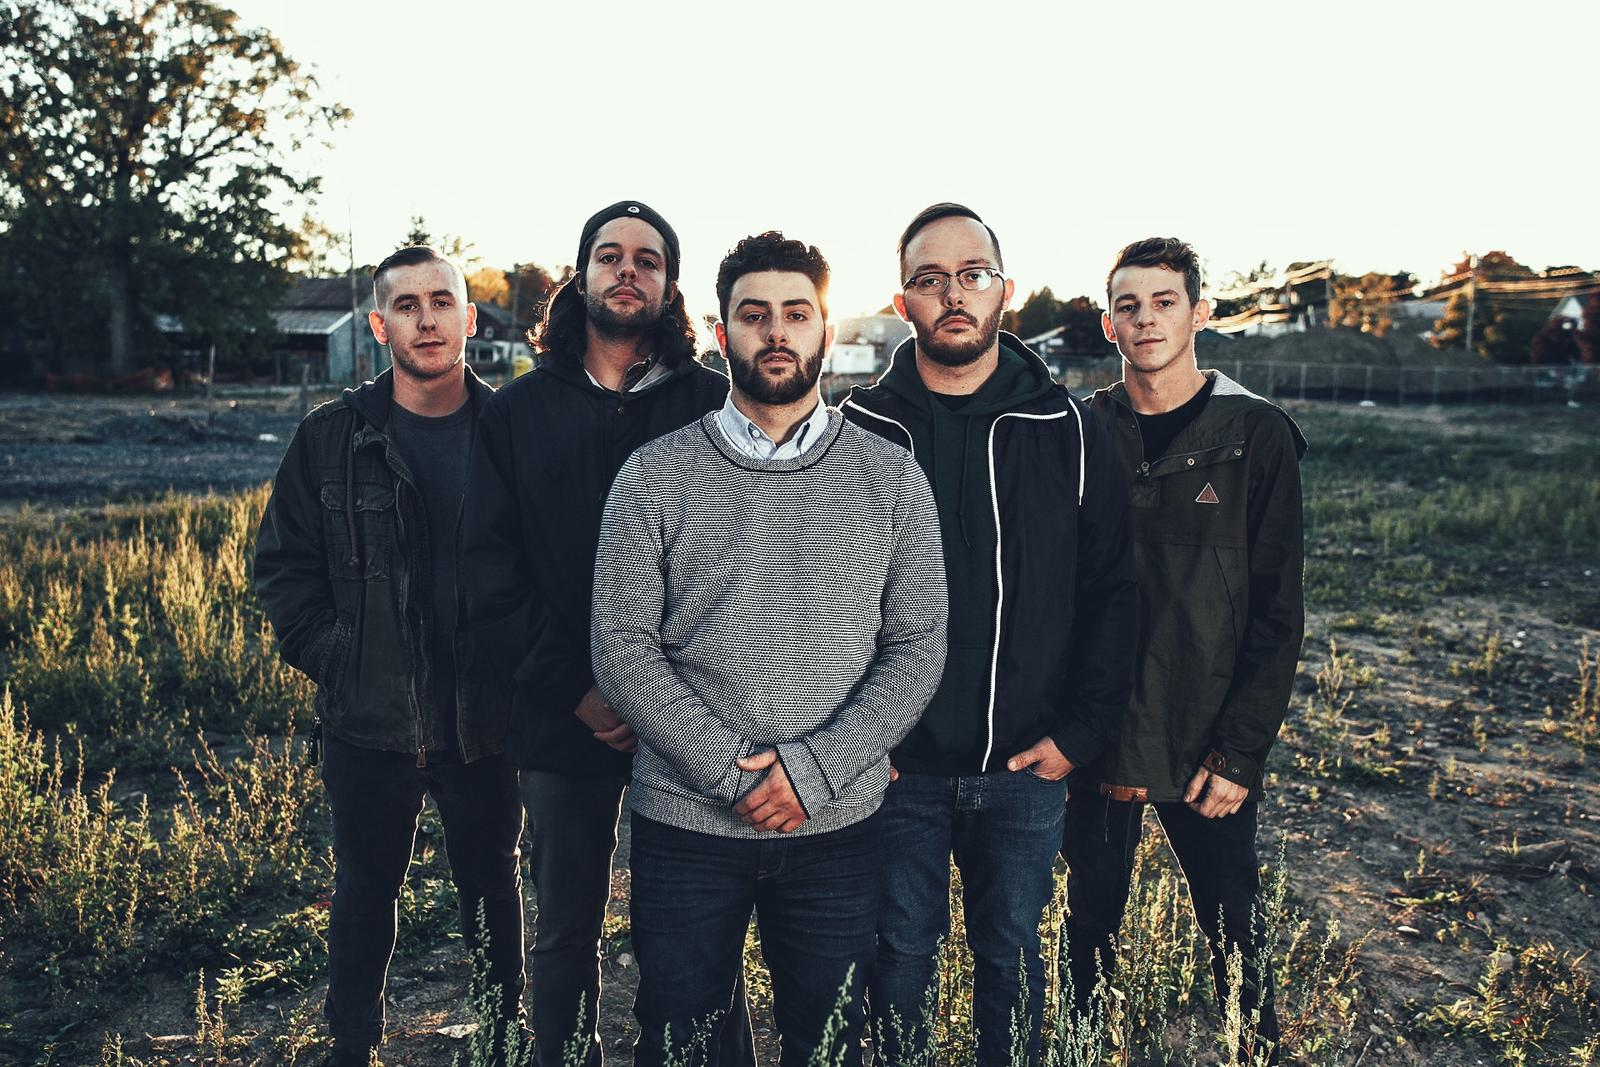 Viewpoints join a new generation of pop punk with 'The Feelings We've Outgrown'